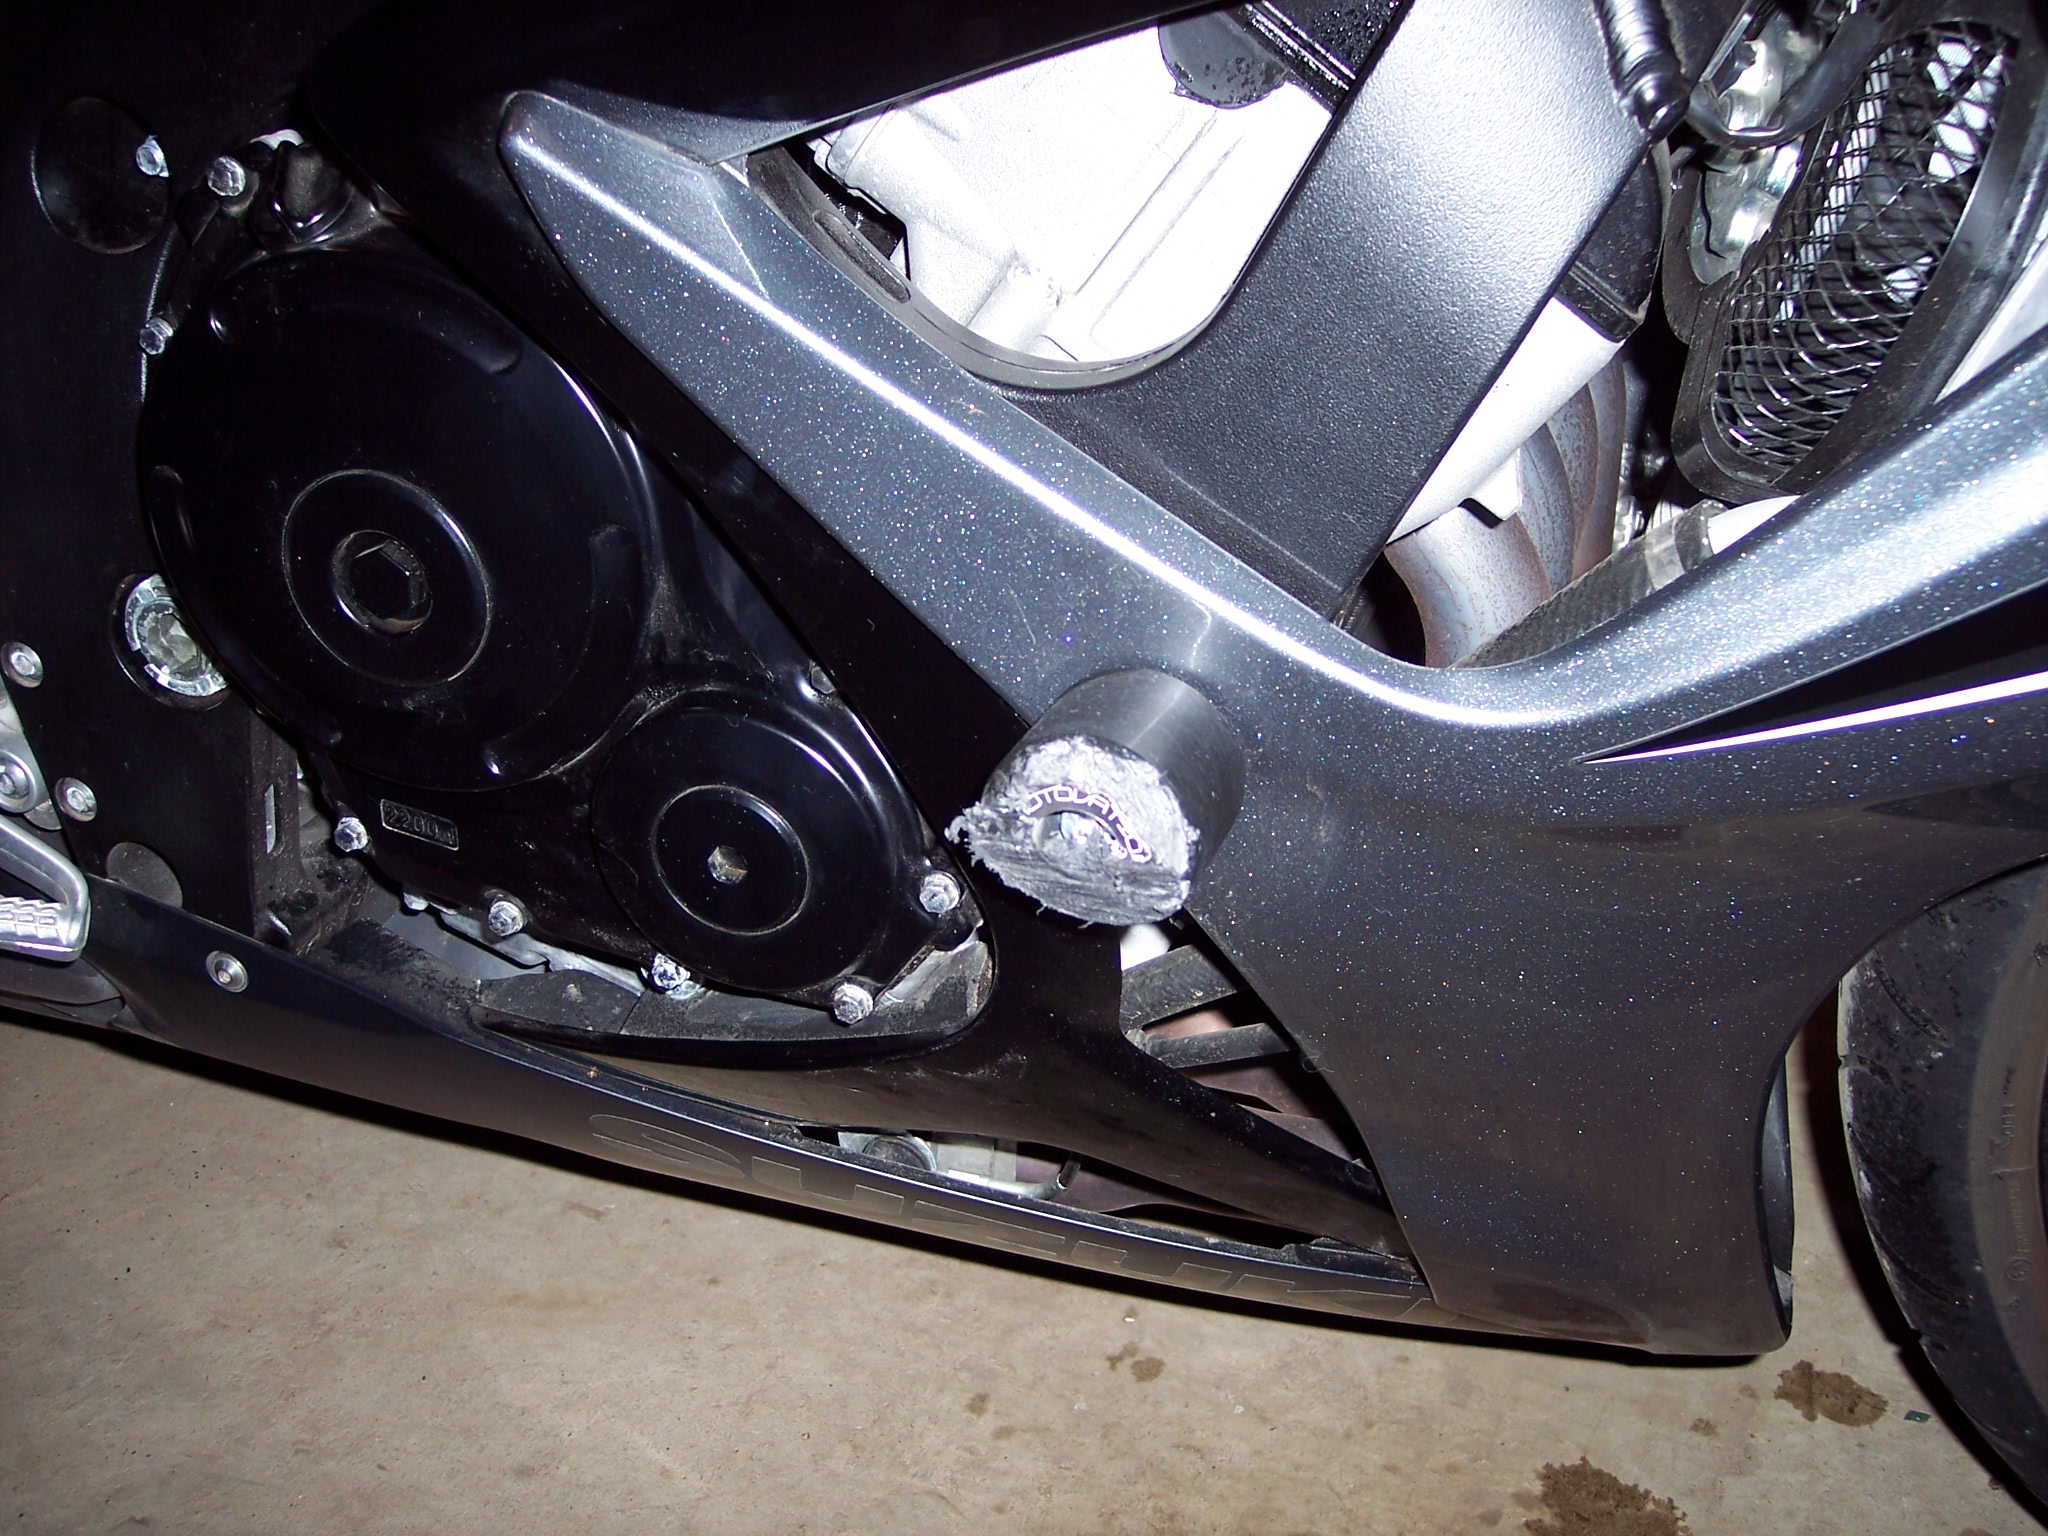 Gsxr 600mods Moded Suzuki Bikes Click Image For Larger Version Name Wreck 001 Views 3269 Size